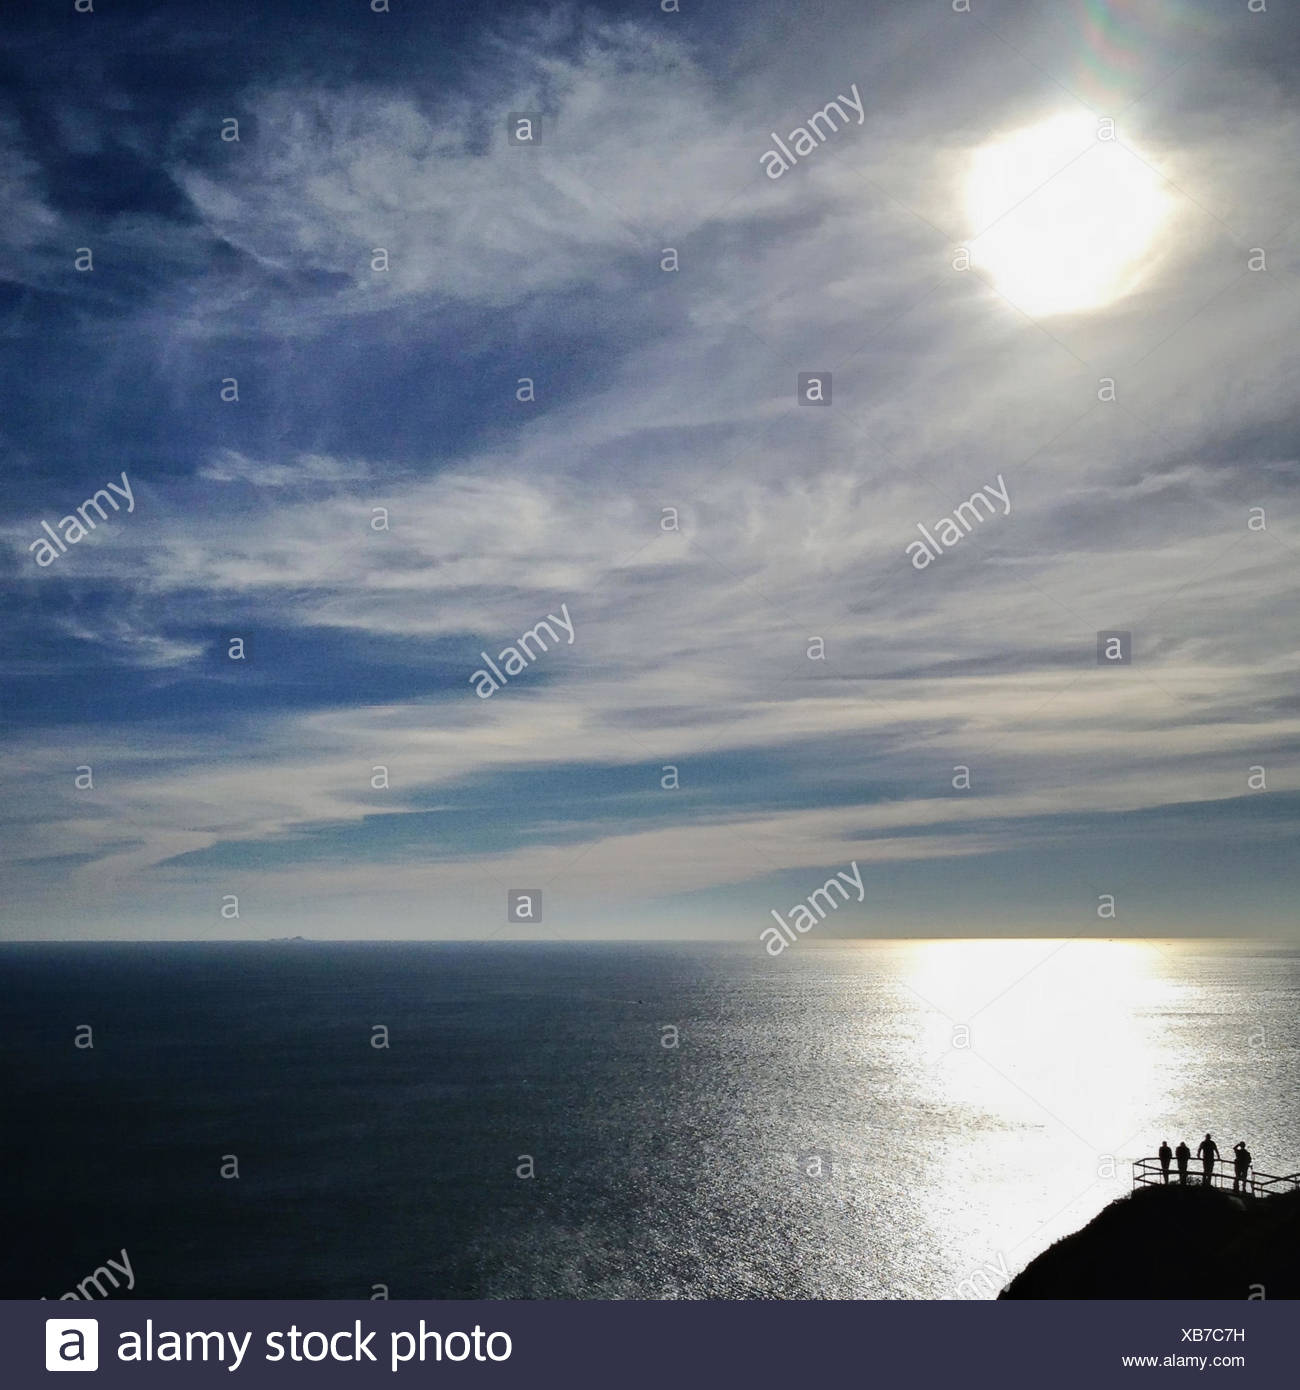 USA, California, Marin County, Muir Beach, View of Pacific Ocean - Stock Image